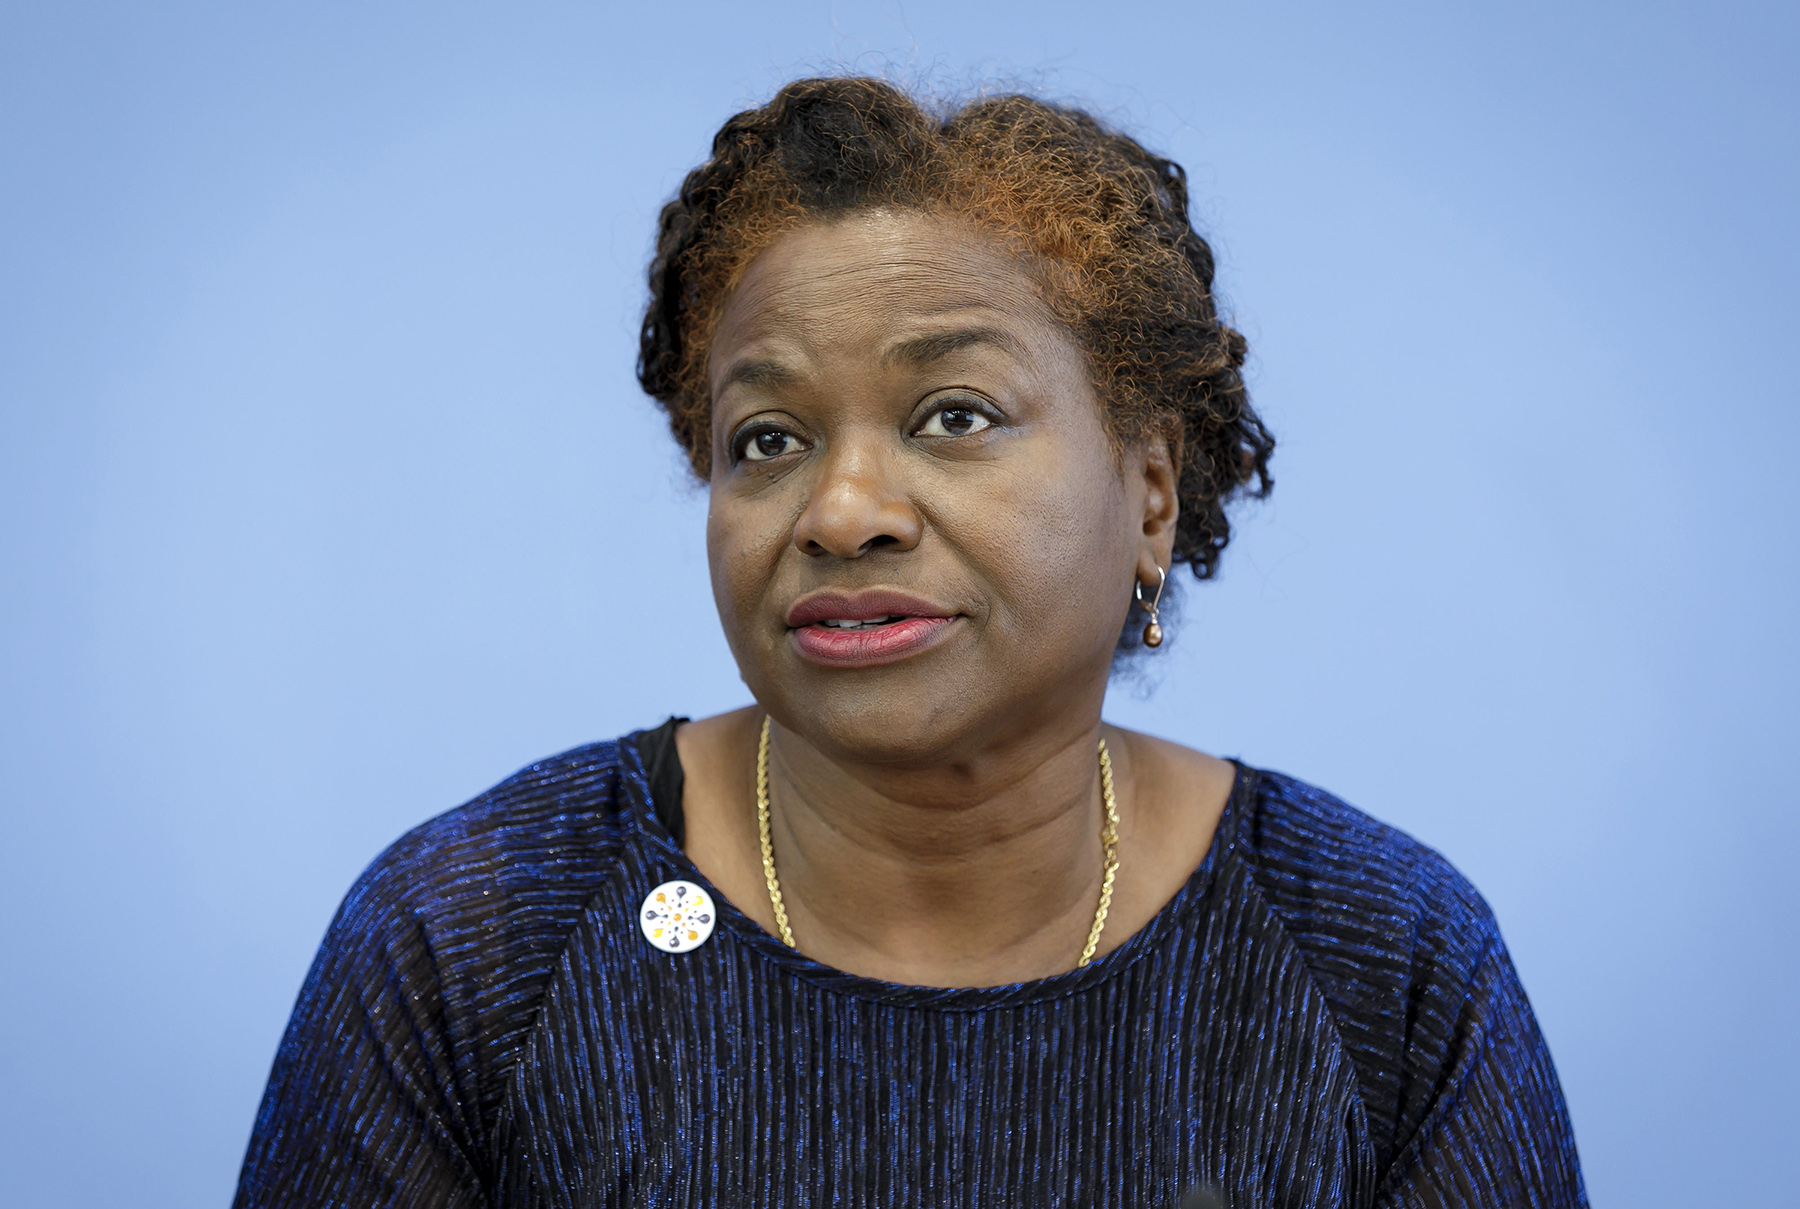 Natalia Kanem, Executive Director of UNFPA, speaks during a news conference on April 10, in Berlin, Germany.